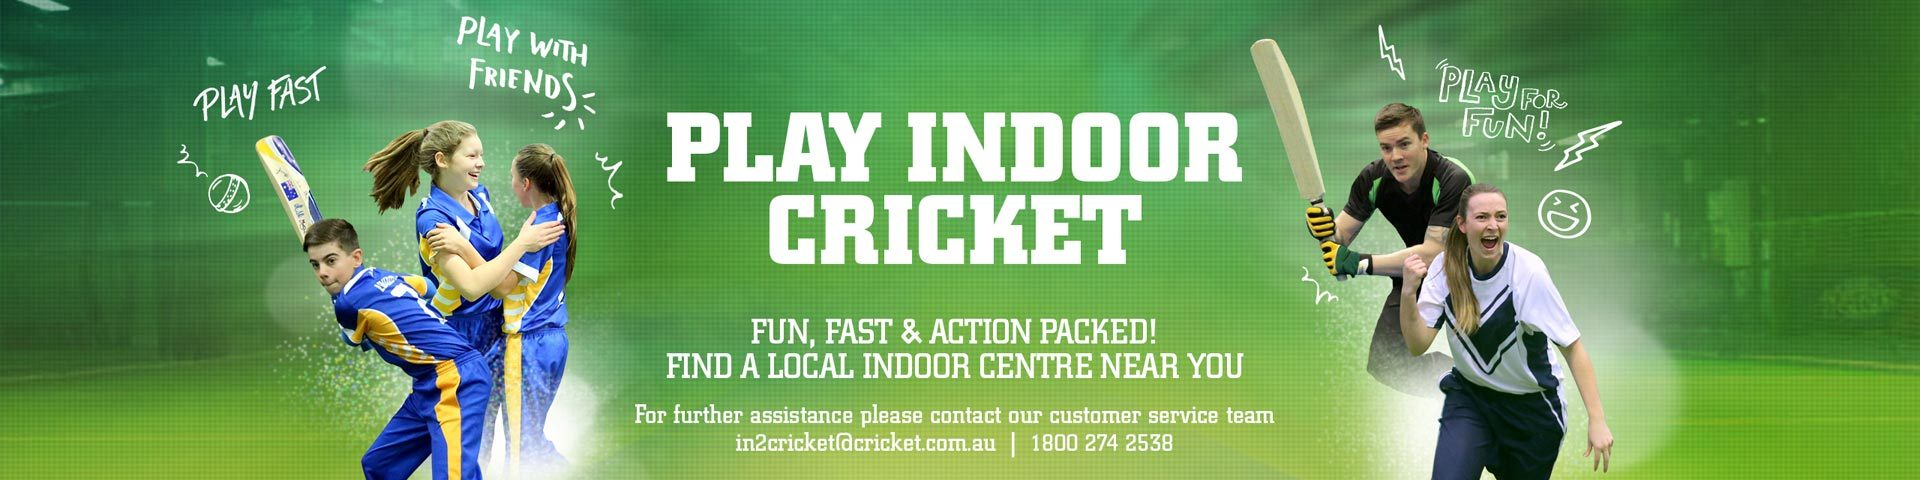 Indoor Cricket 2018